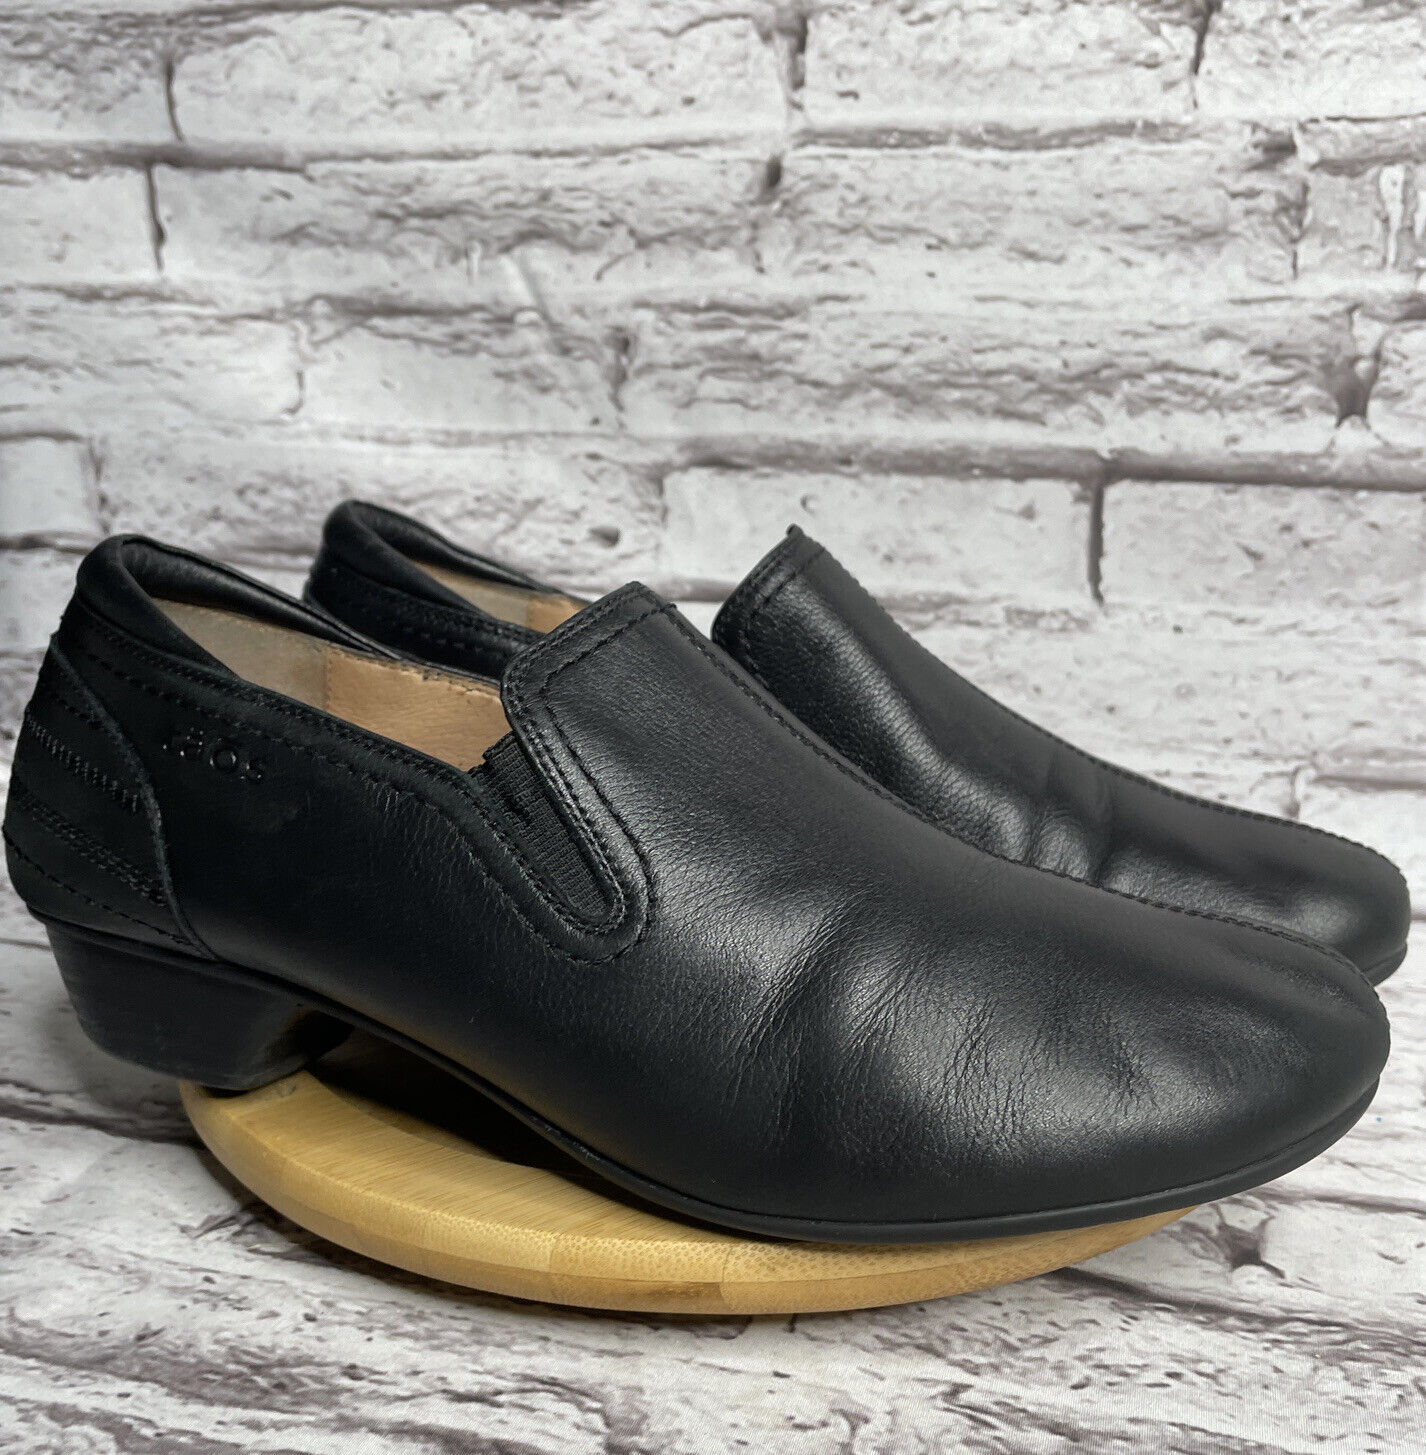 Taos Shuffle Womens Size 9.5 Black Leather Slip On Shoes